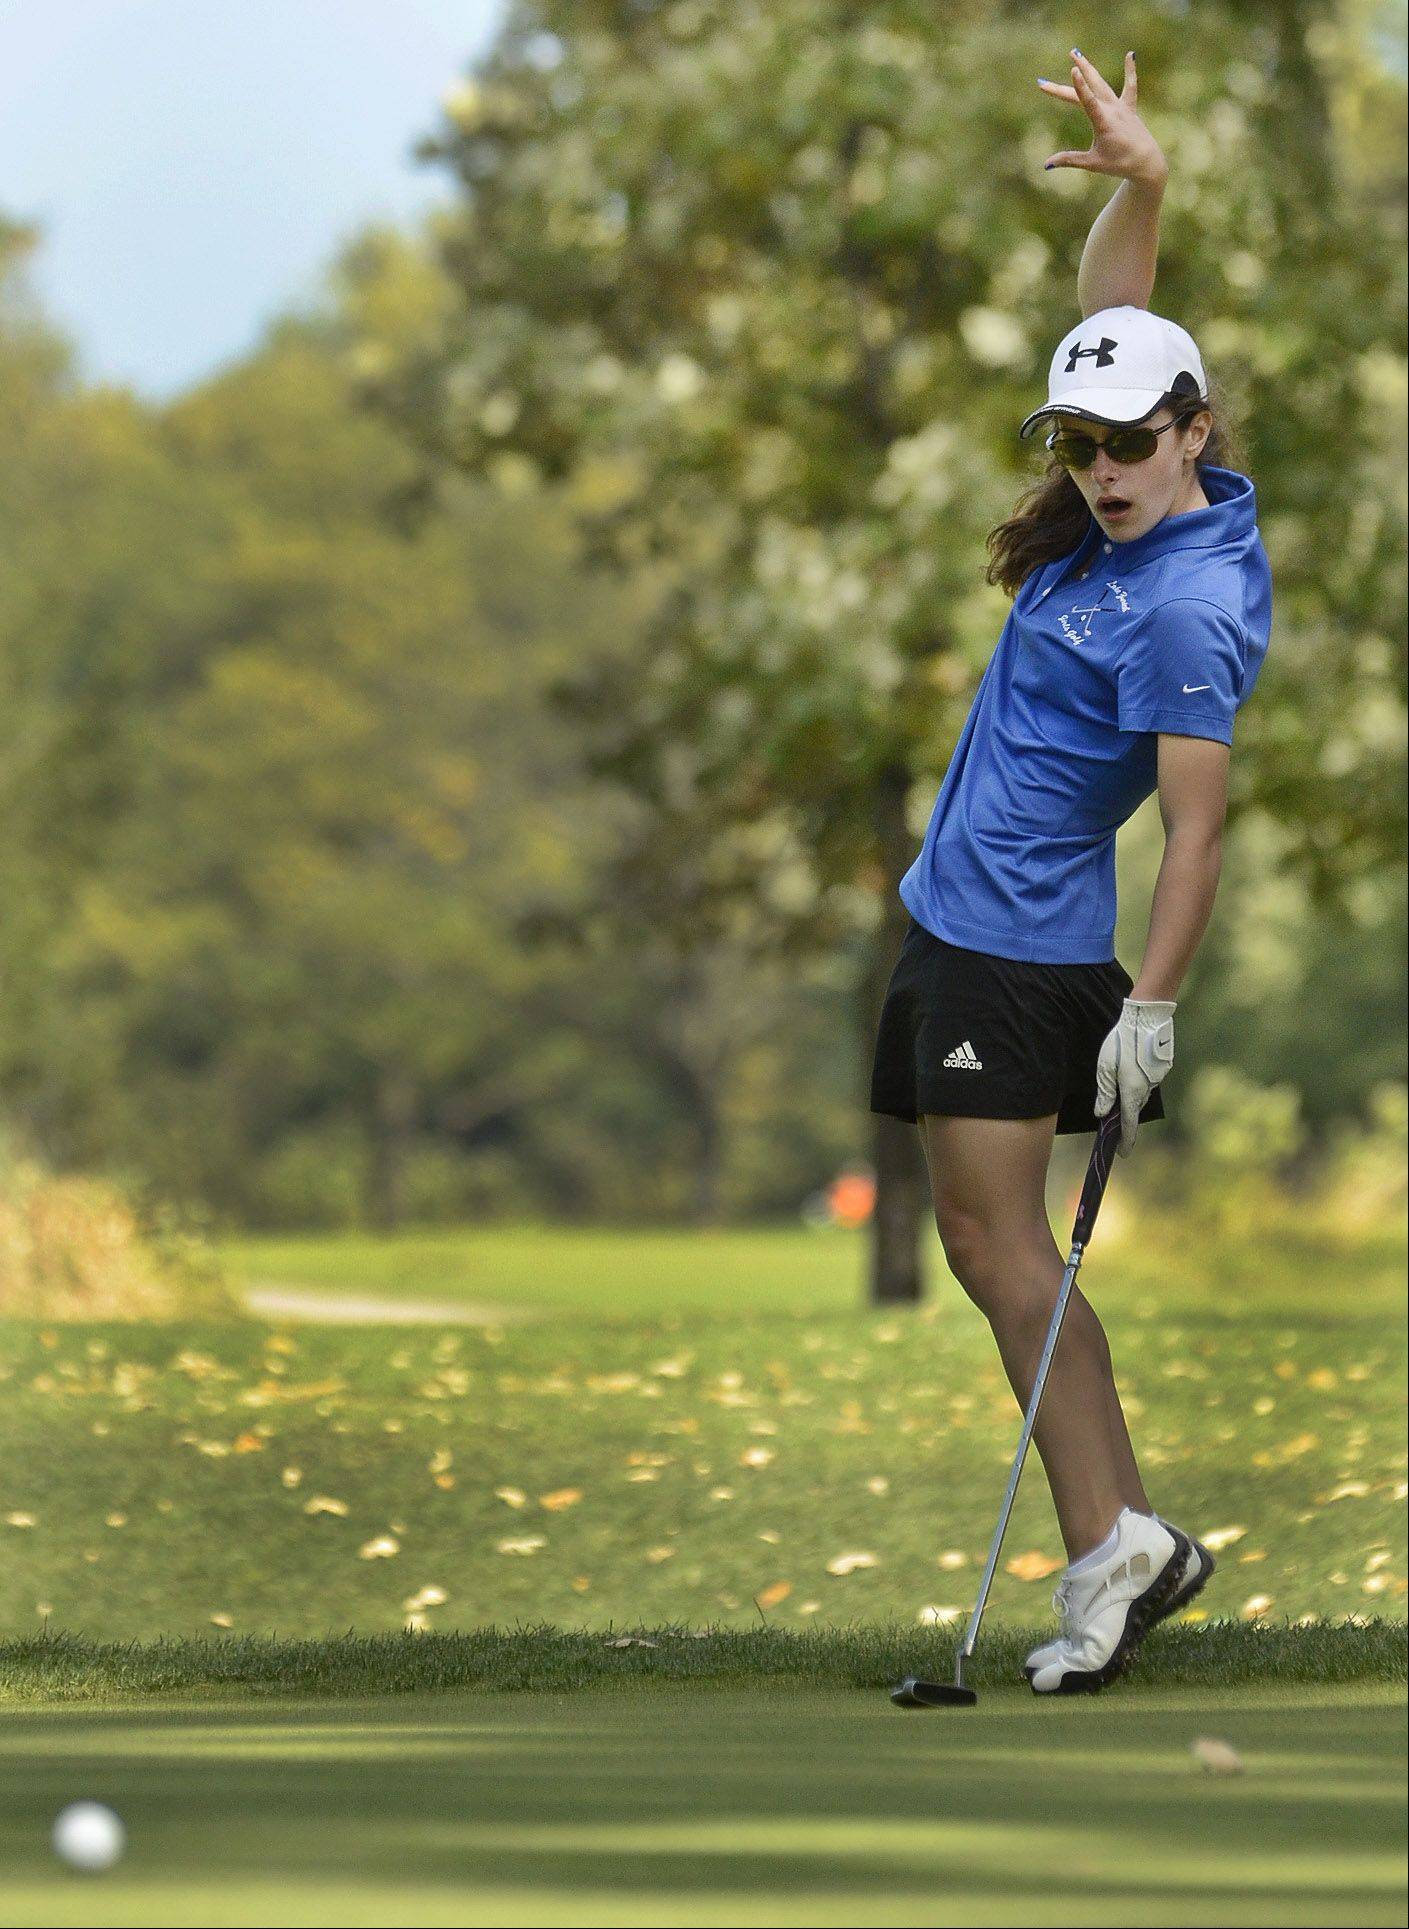 Lake Zurich's Megan Malcolm uses body english on a putt during the North Suburban Conference girls golf meet at Deerpath Golf Course in Lake Forest.